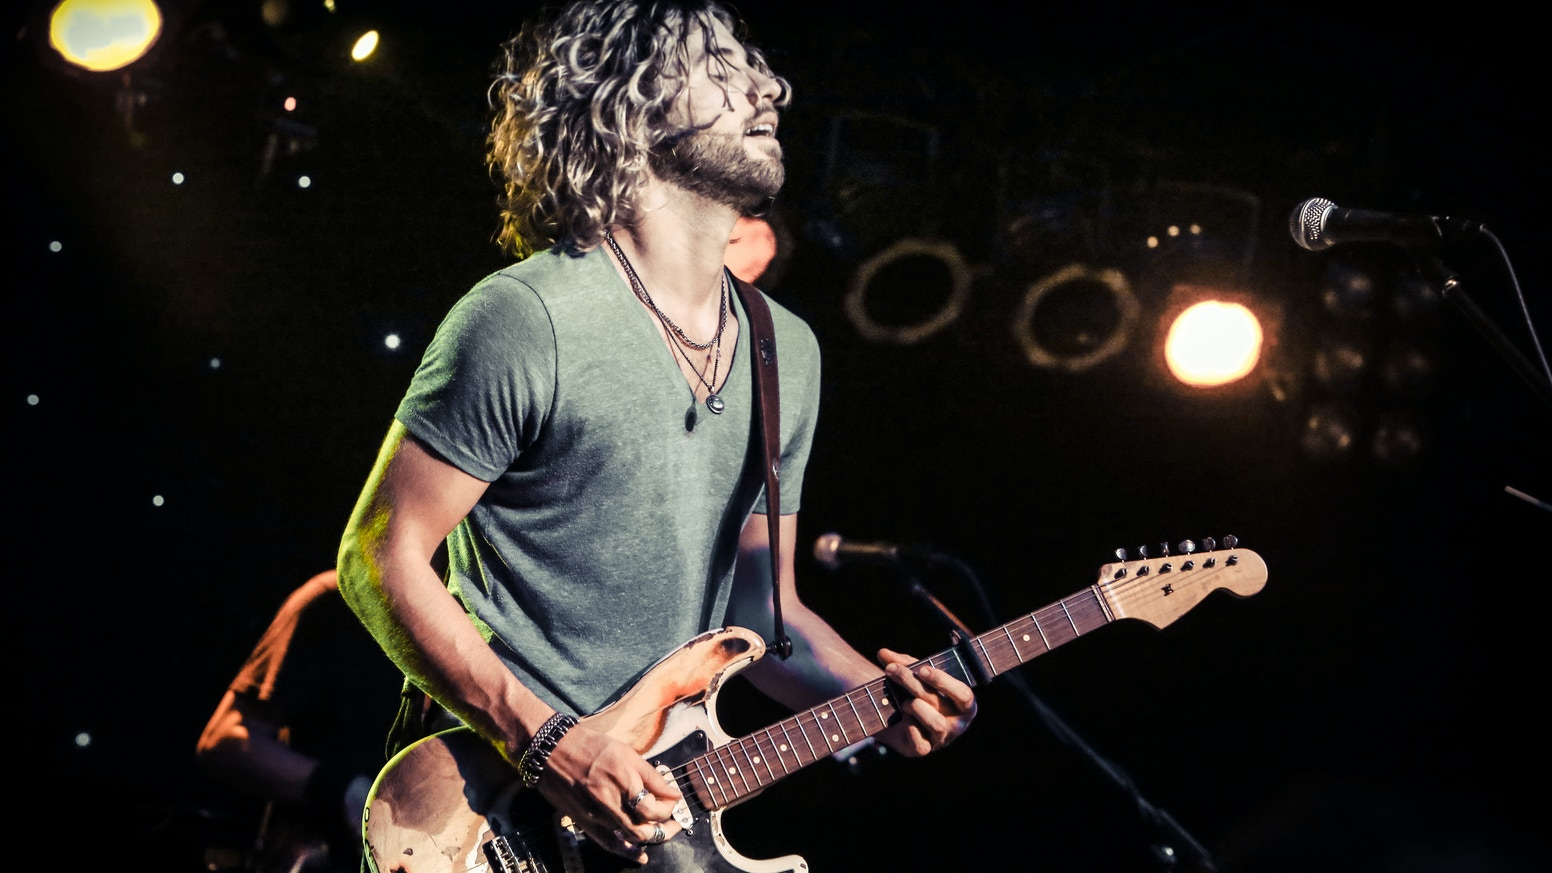 Casey James Independent Studio Album